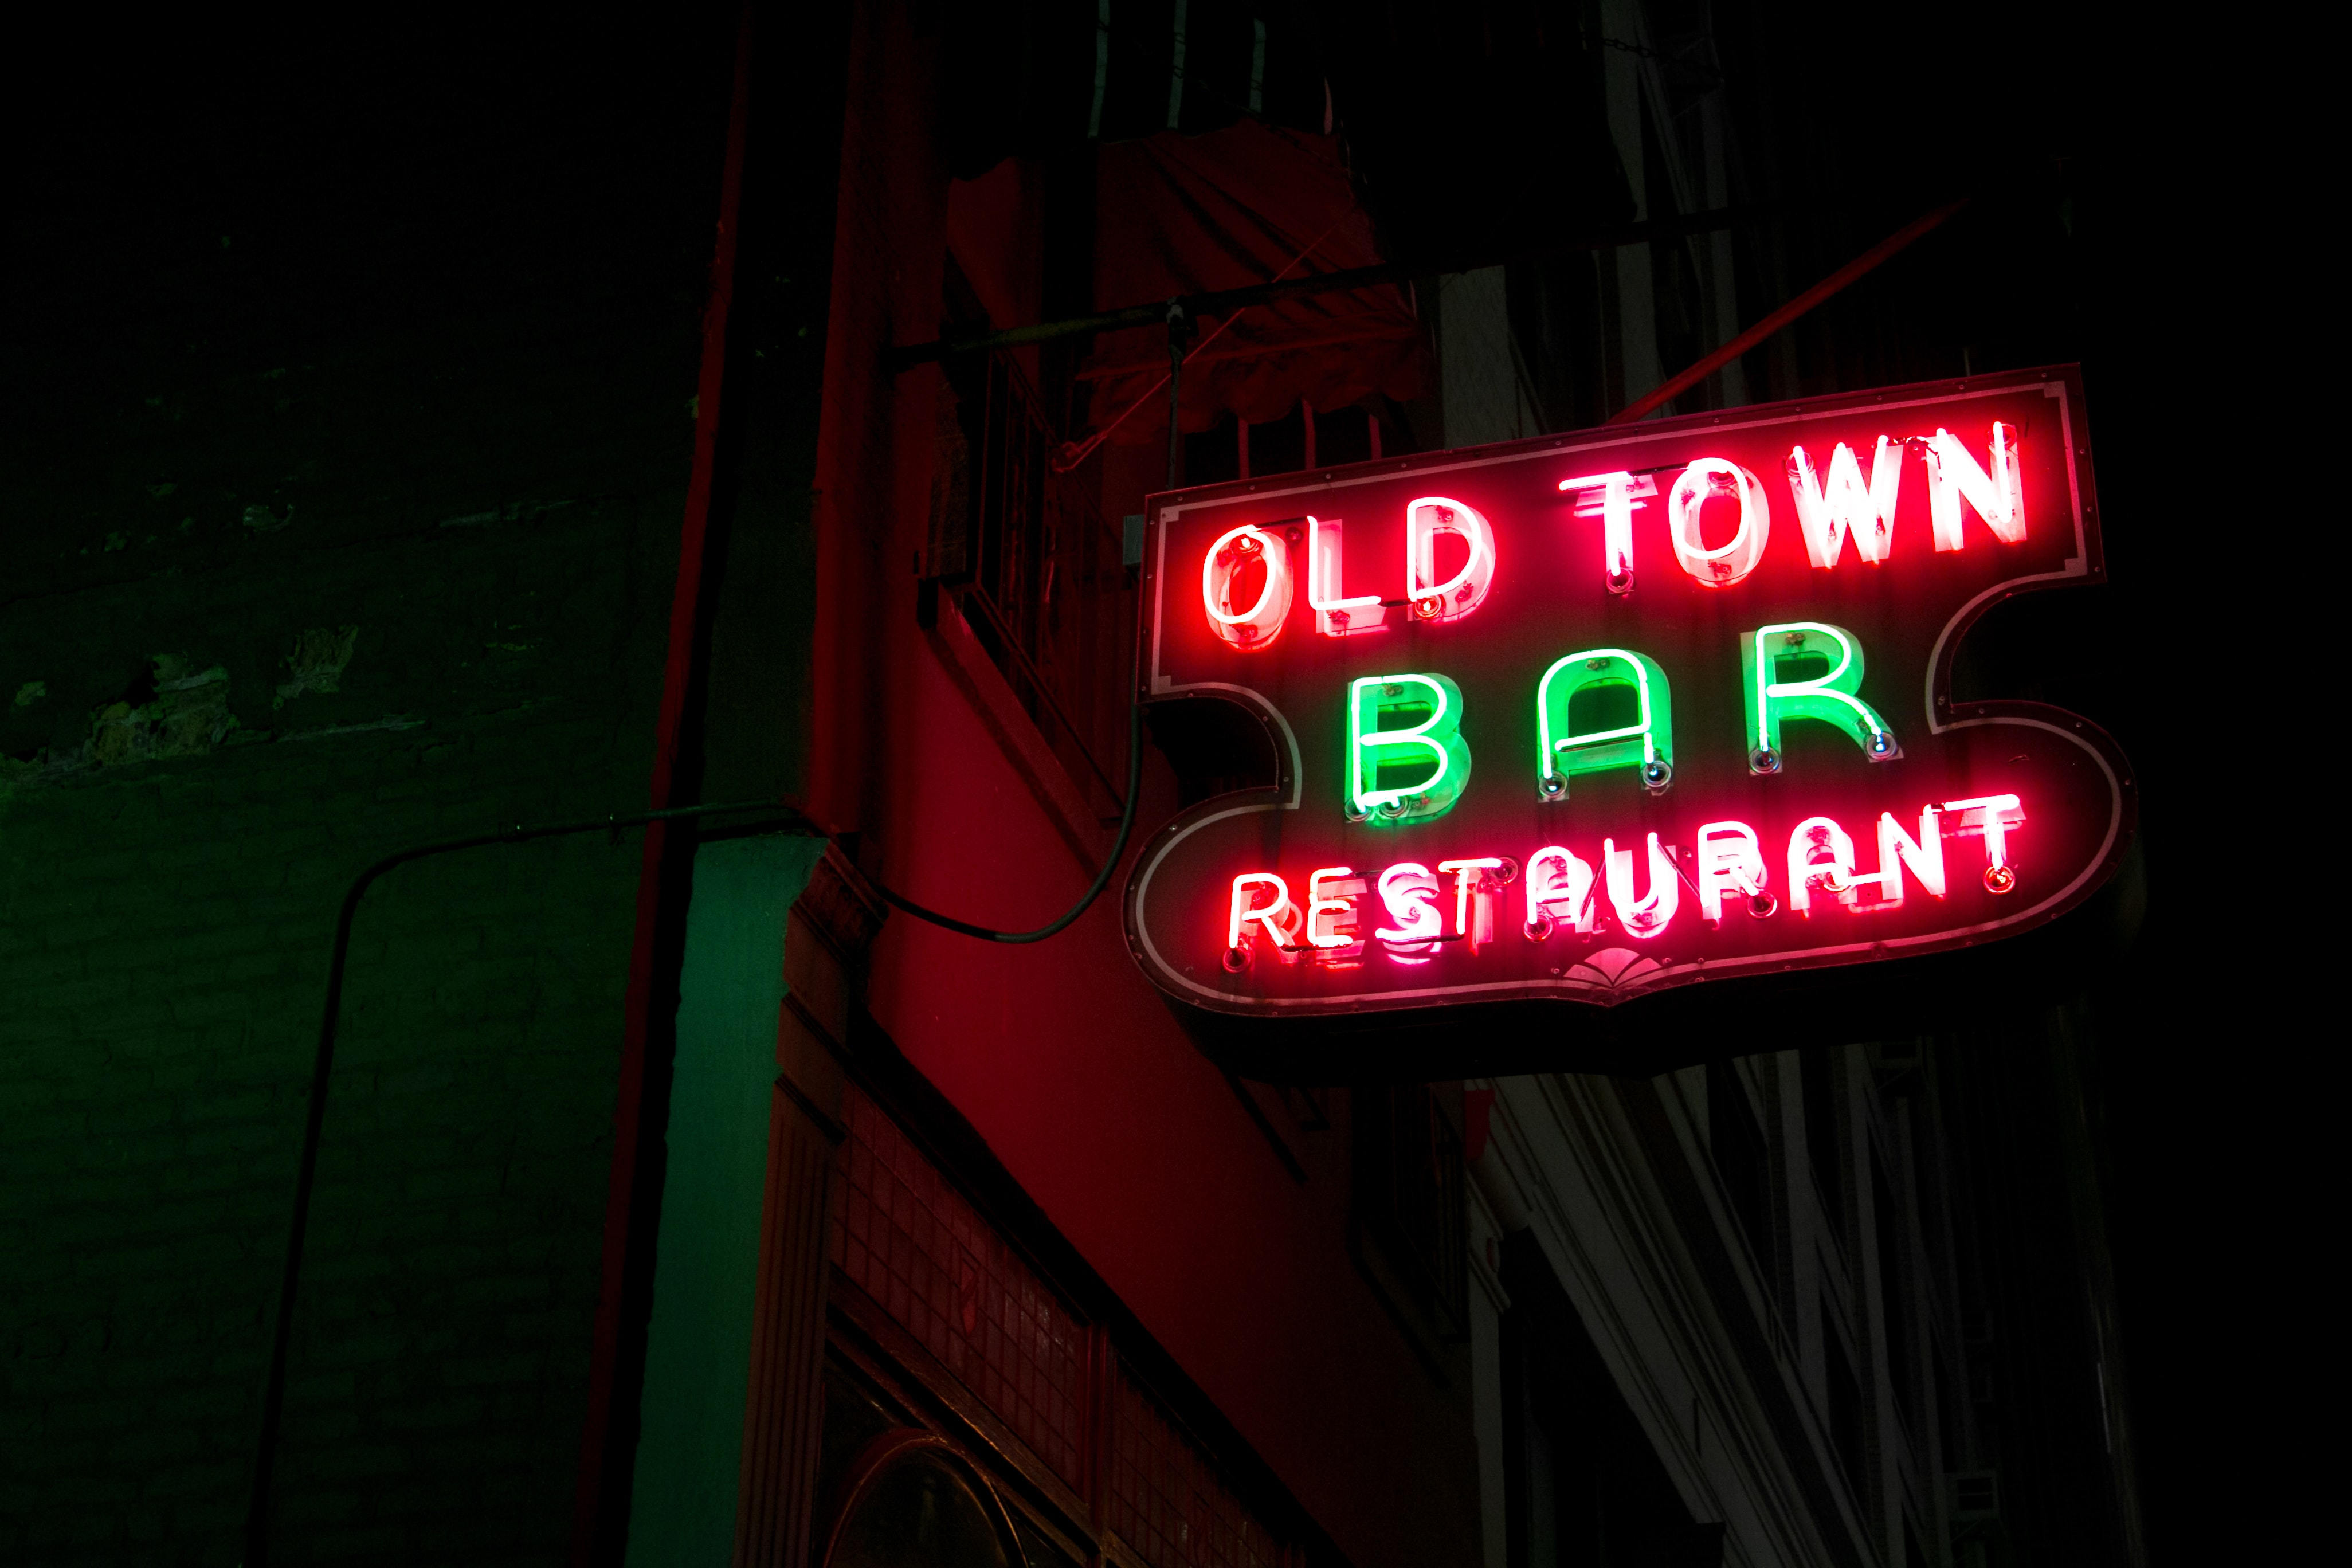 A bright red and green sign in a small town that shines at night.